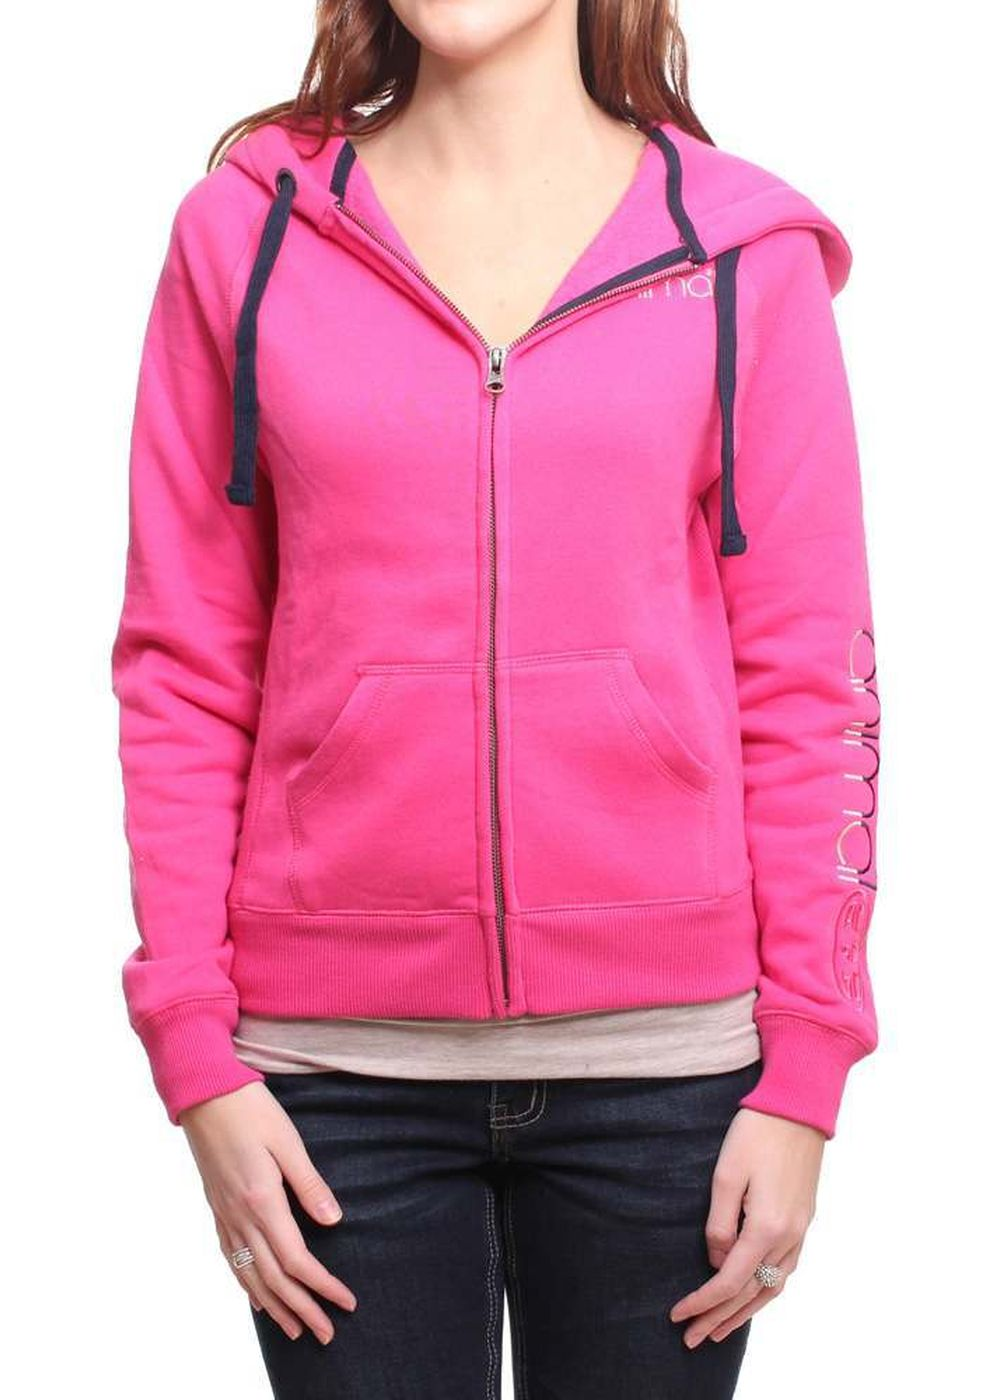 ANIMAL JAHIRA ZIP HOODY Fuchsia